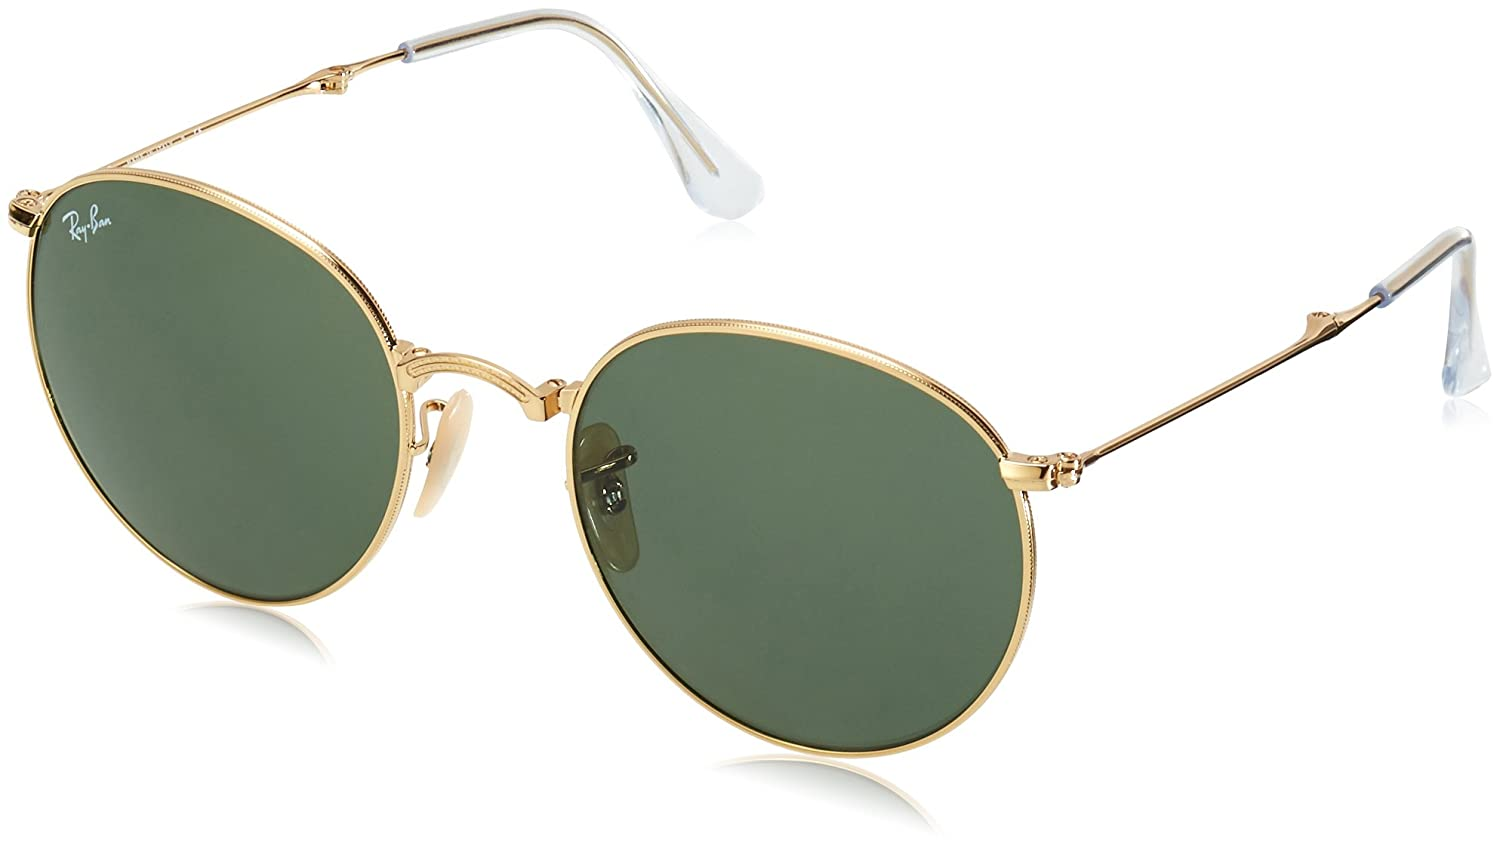 Ray-Ban Sonnenbrille (RB 3532)